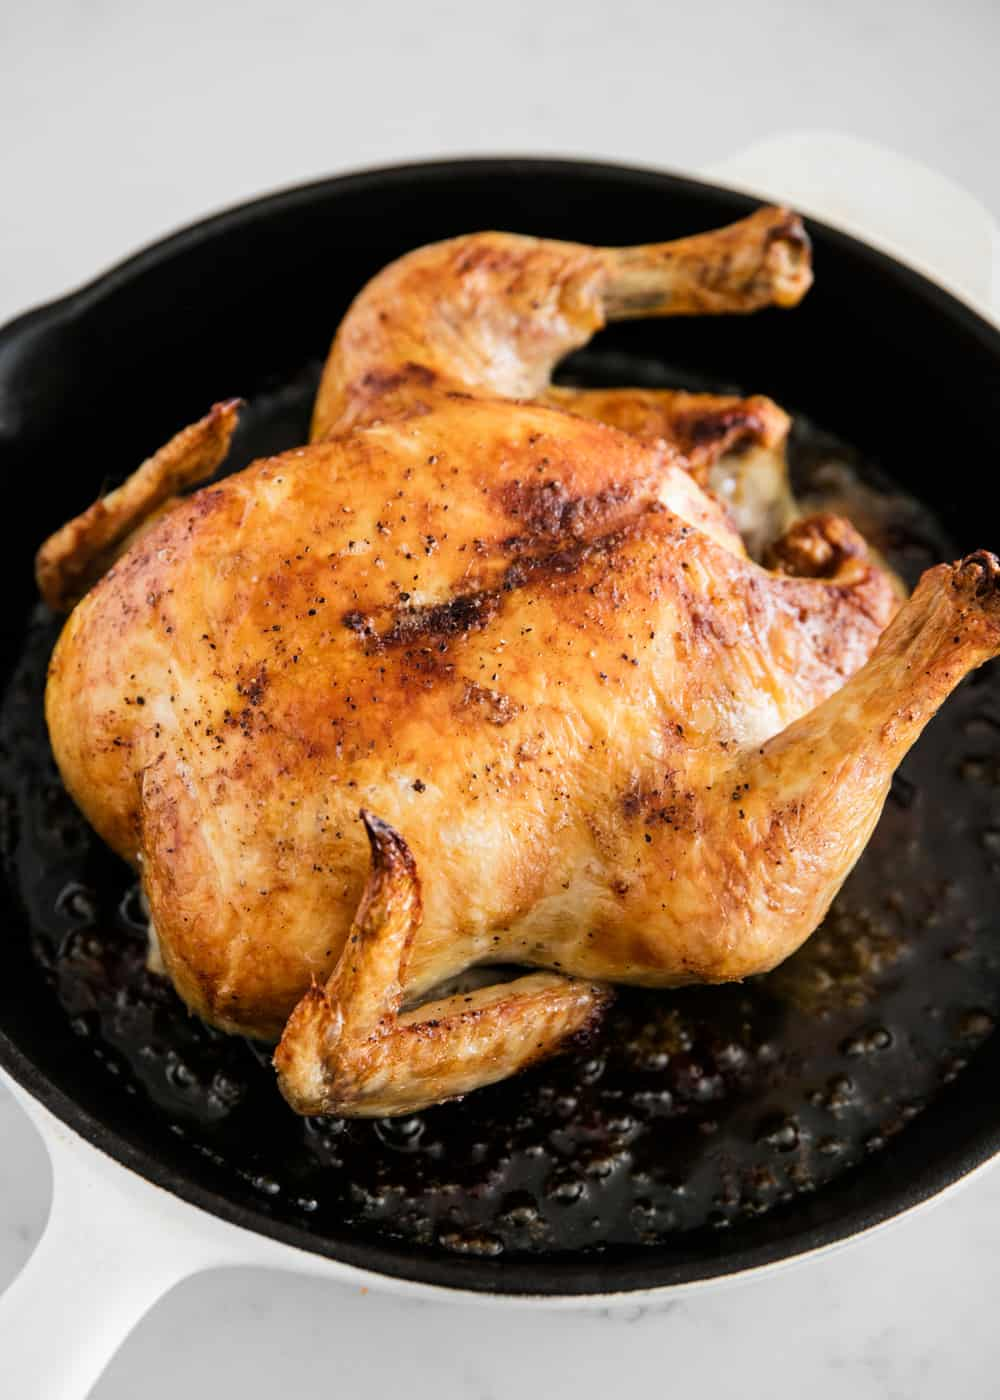 oven roasted chicken in a cast iron skillet